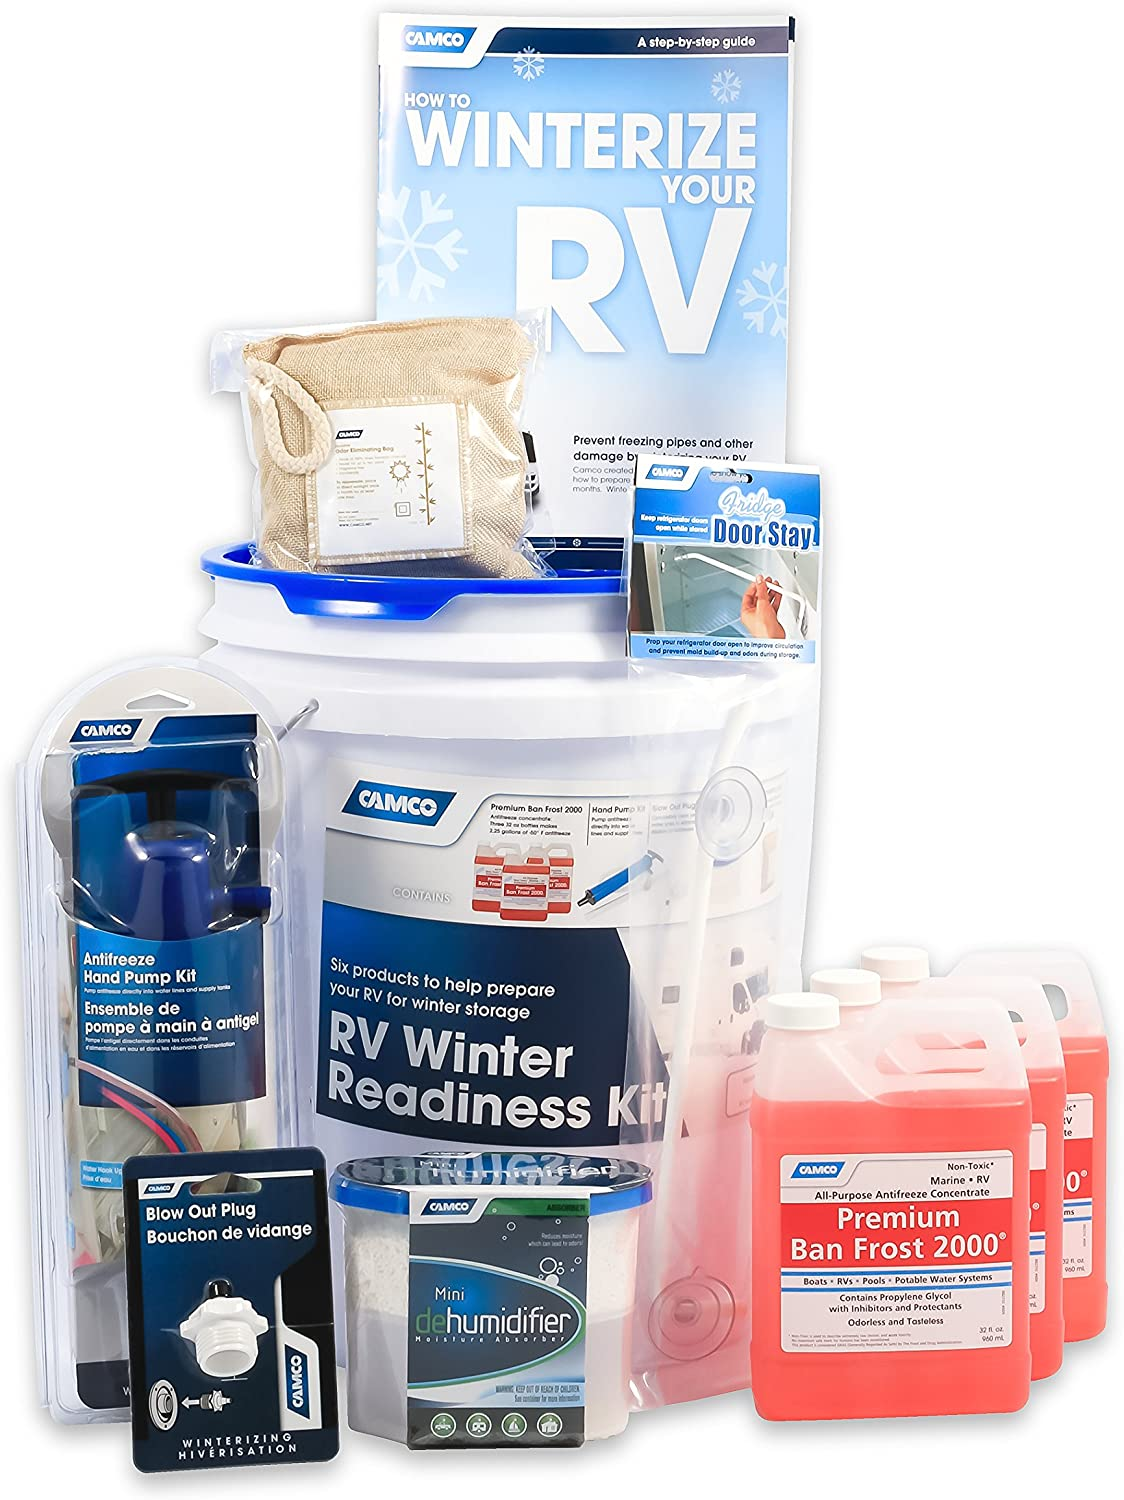 Amazon Com Camco 36190 Rv Winter Readiness Kit Includes Antifreeze Concentrate And Hand Pump Blow Out Plug Dehumidifier And More Comes With Bonus Winterizing Guide Automotive